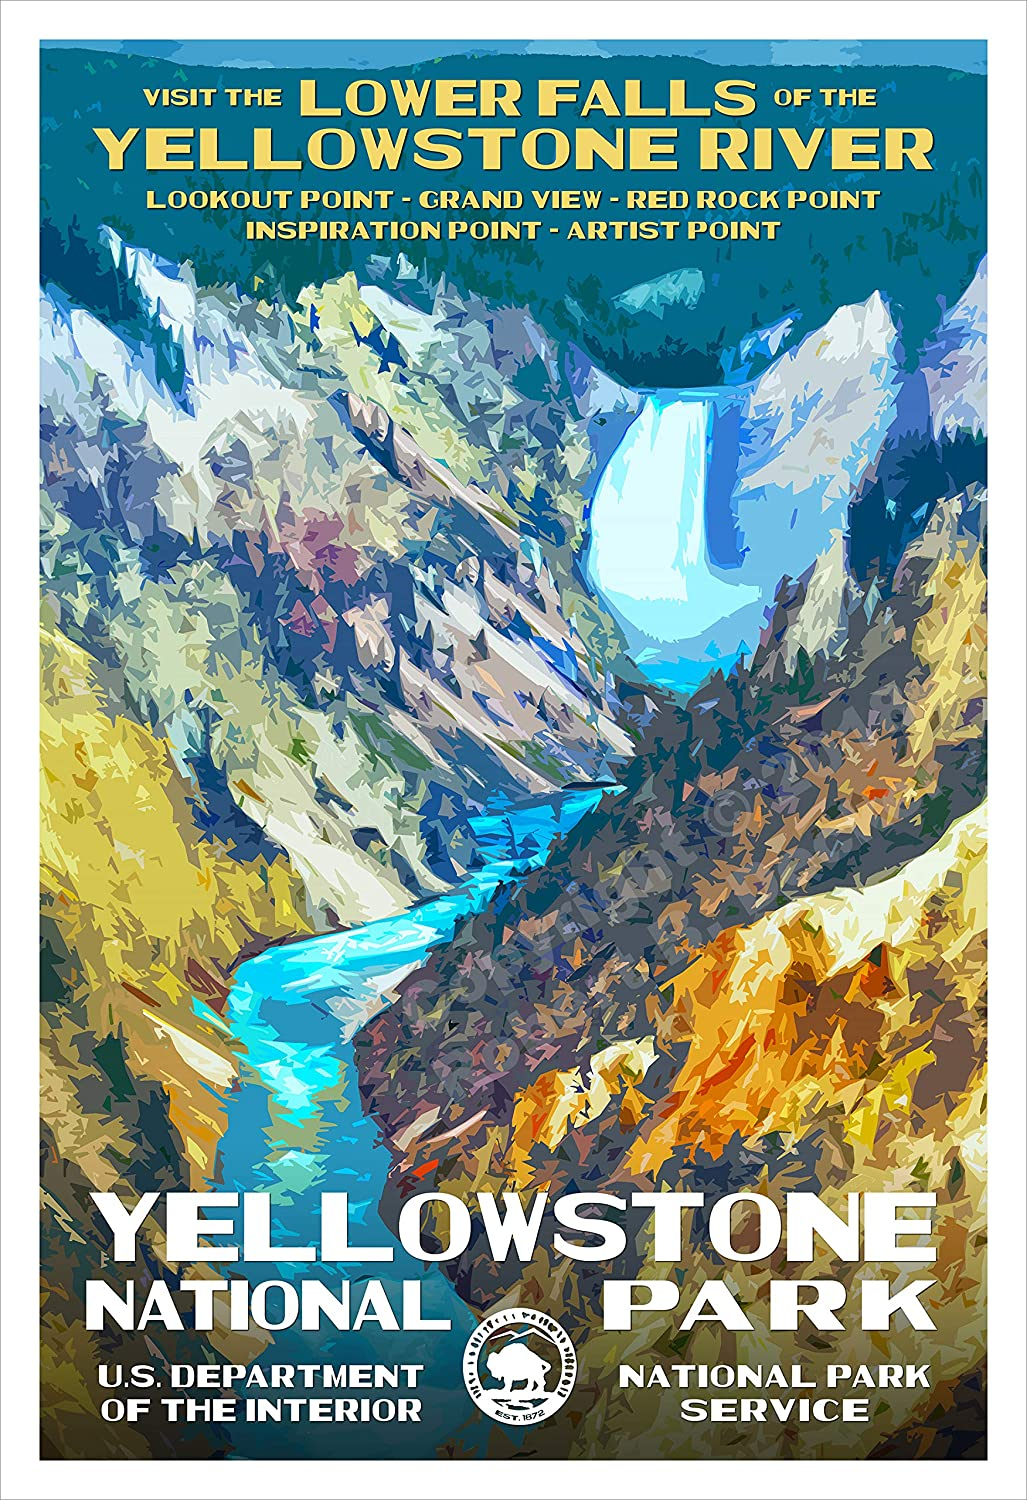 """Yellowstone National Park, Wyoming - Lower Falls Yellowstone River - WPA-Style National Park Poster - 13"""" x 19"""" - Wall Decor for Home and Office - Original Artwork by Robert B. Decker"""